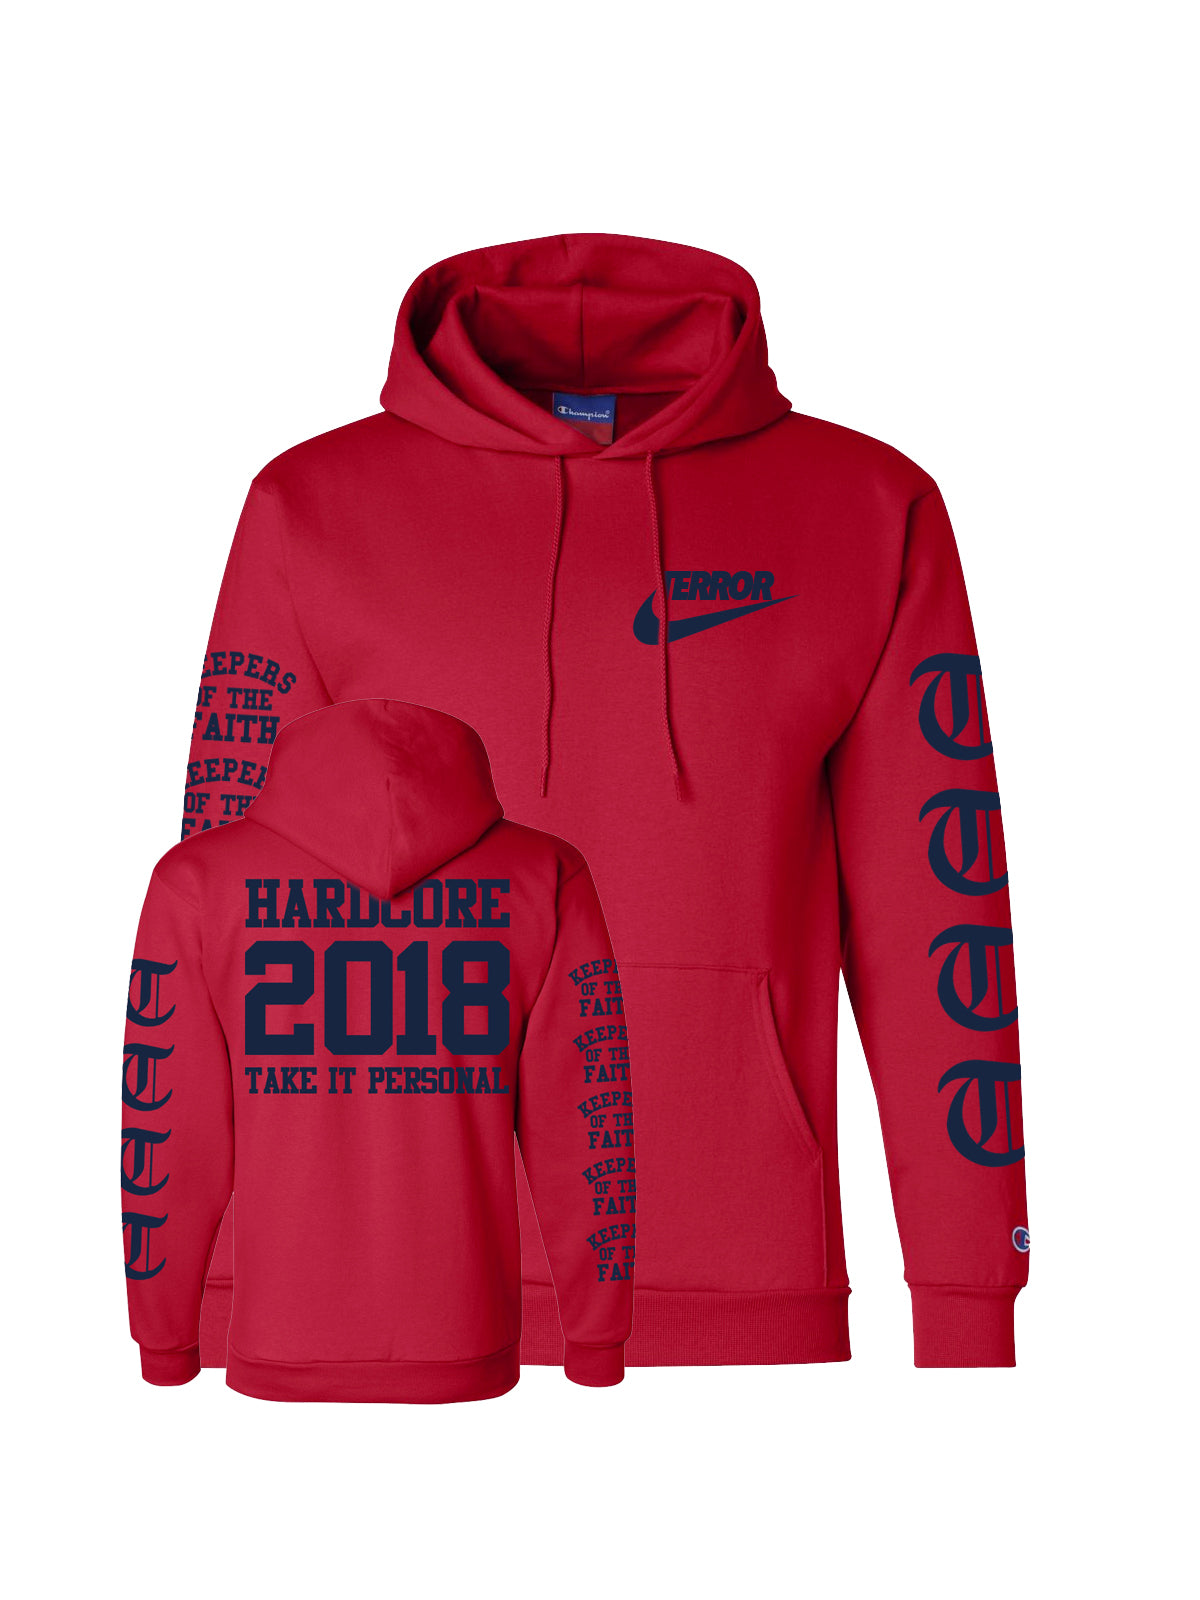 Terror - Take It Personal Champion Hoodie - Merch Limited